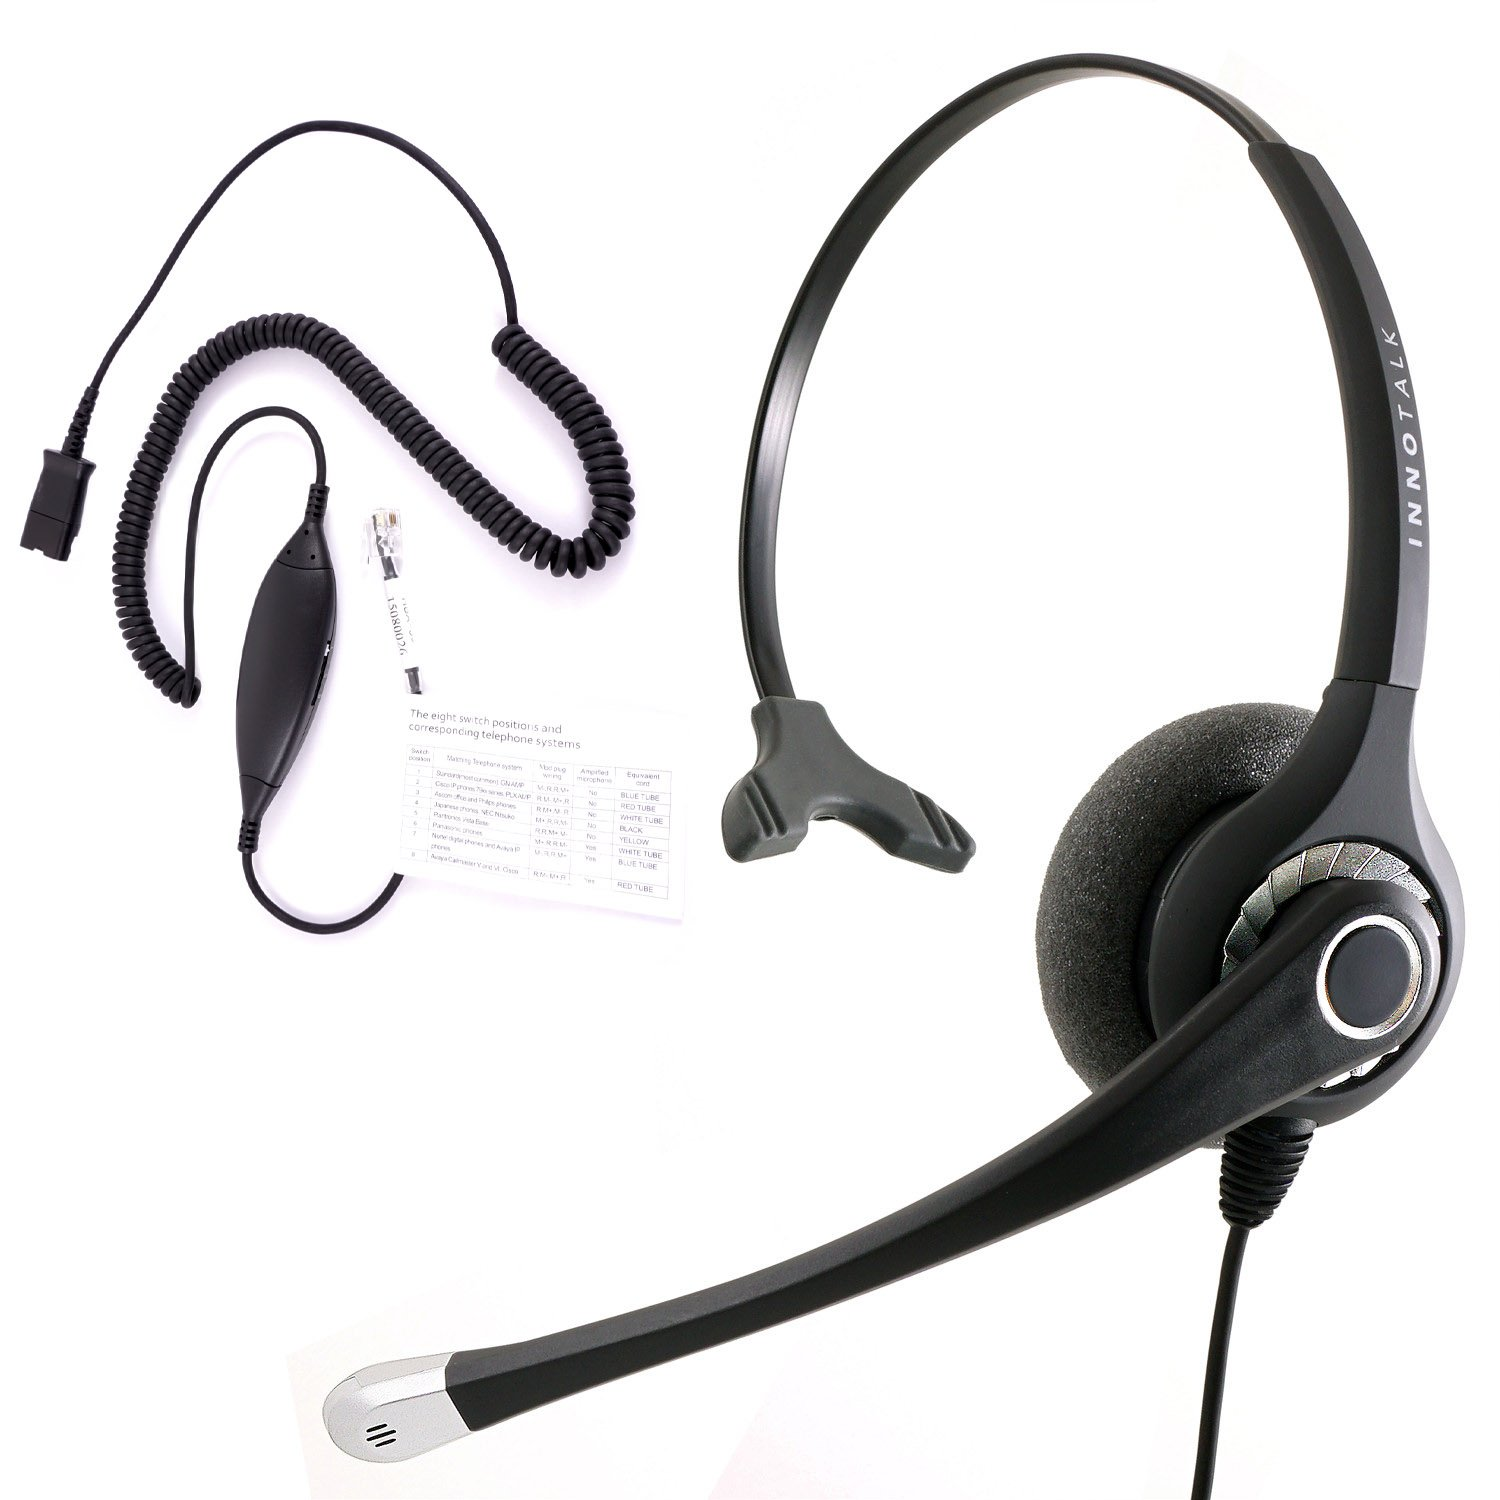 Rj9 Headset Best Sound Phone Cisco Avaya Telephone Wiring Diagram Panasonic Virtual Compatibility Adapter Built In Plantronics Compatible Qd